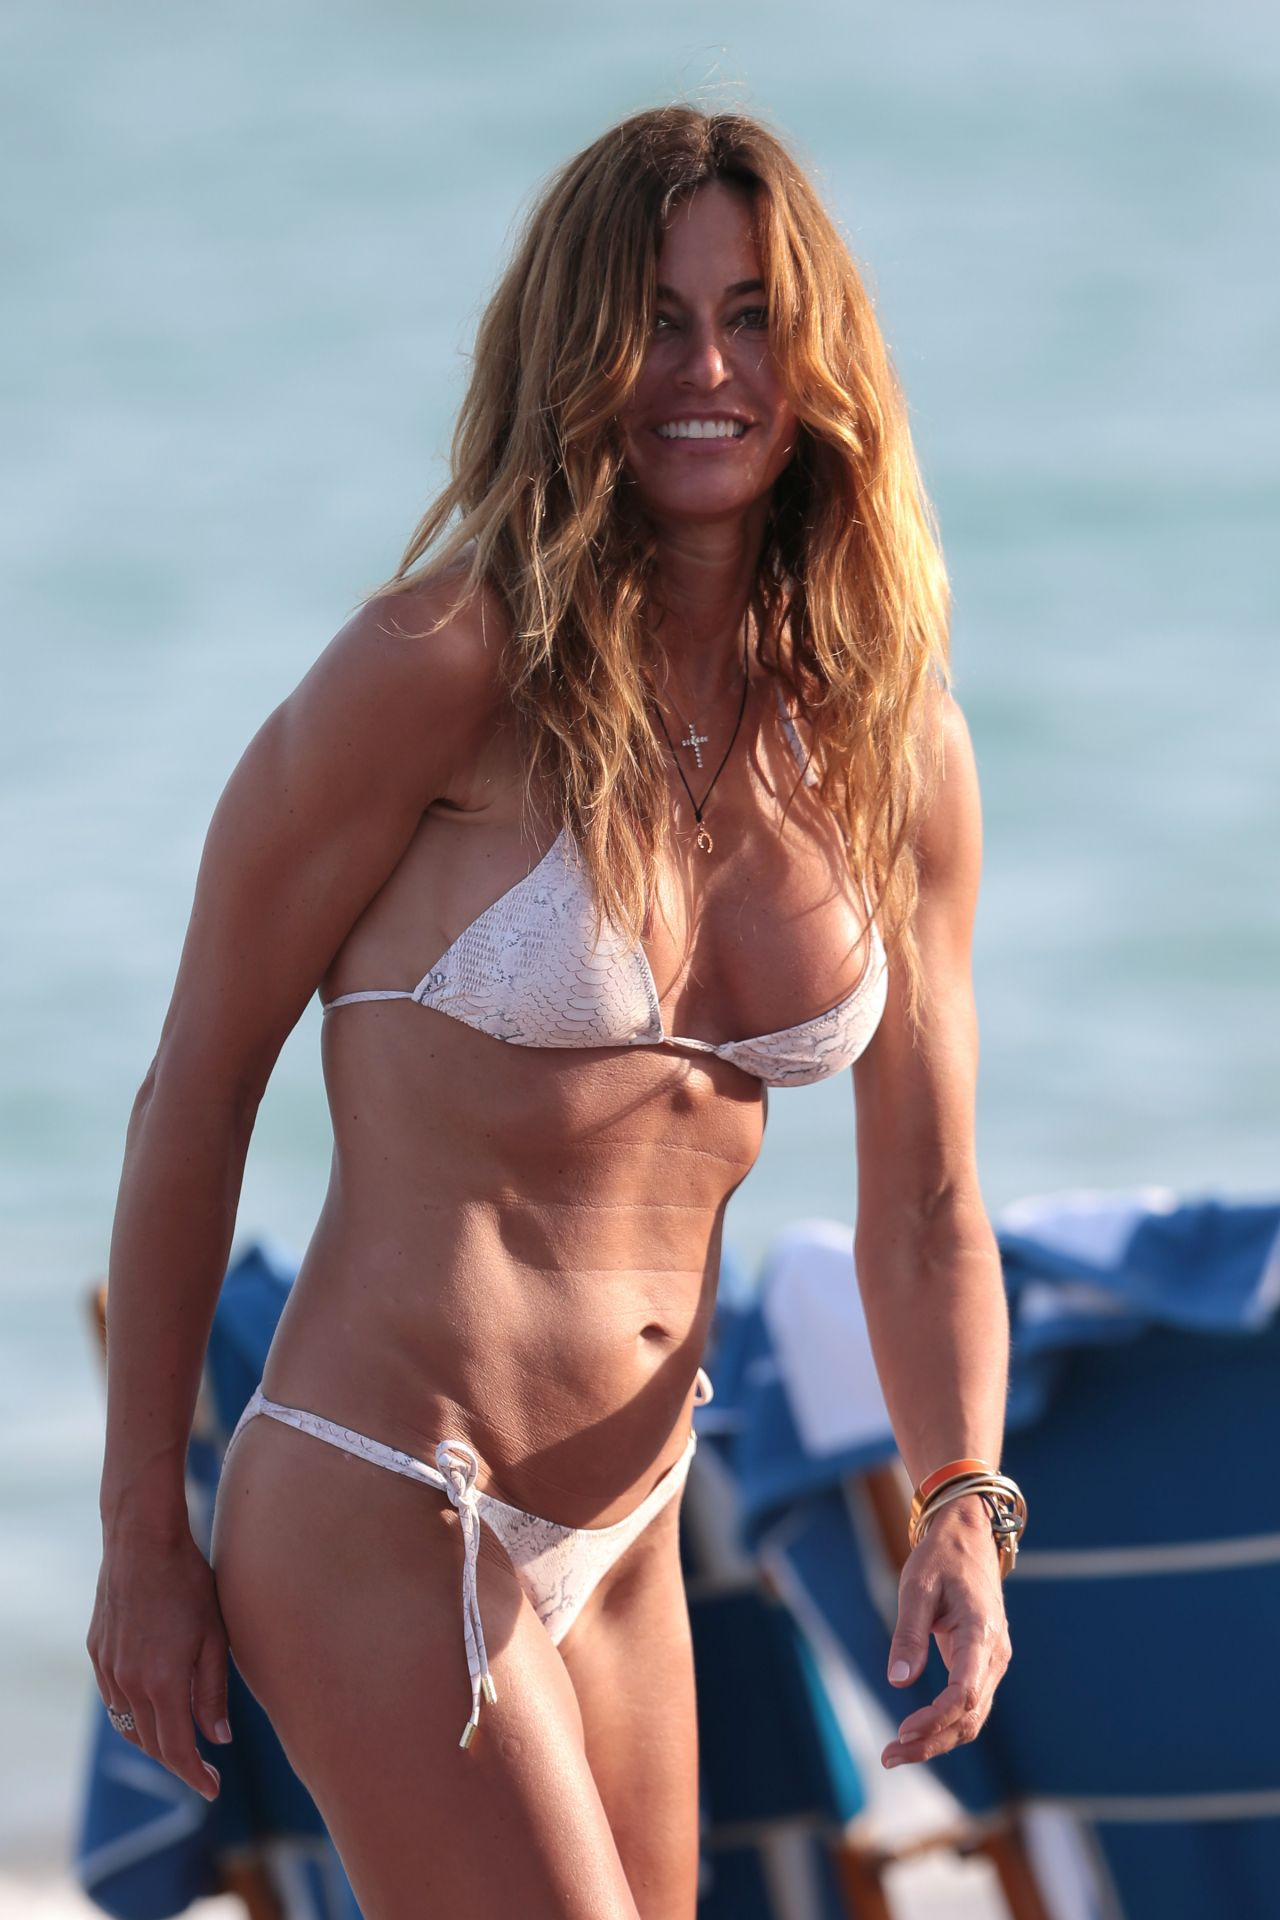 Kelly Bensimon in White Bikini in Miami Pic 20 of 35